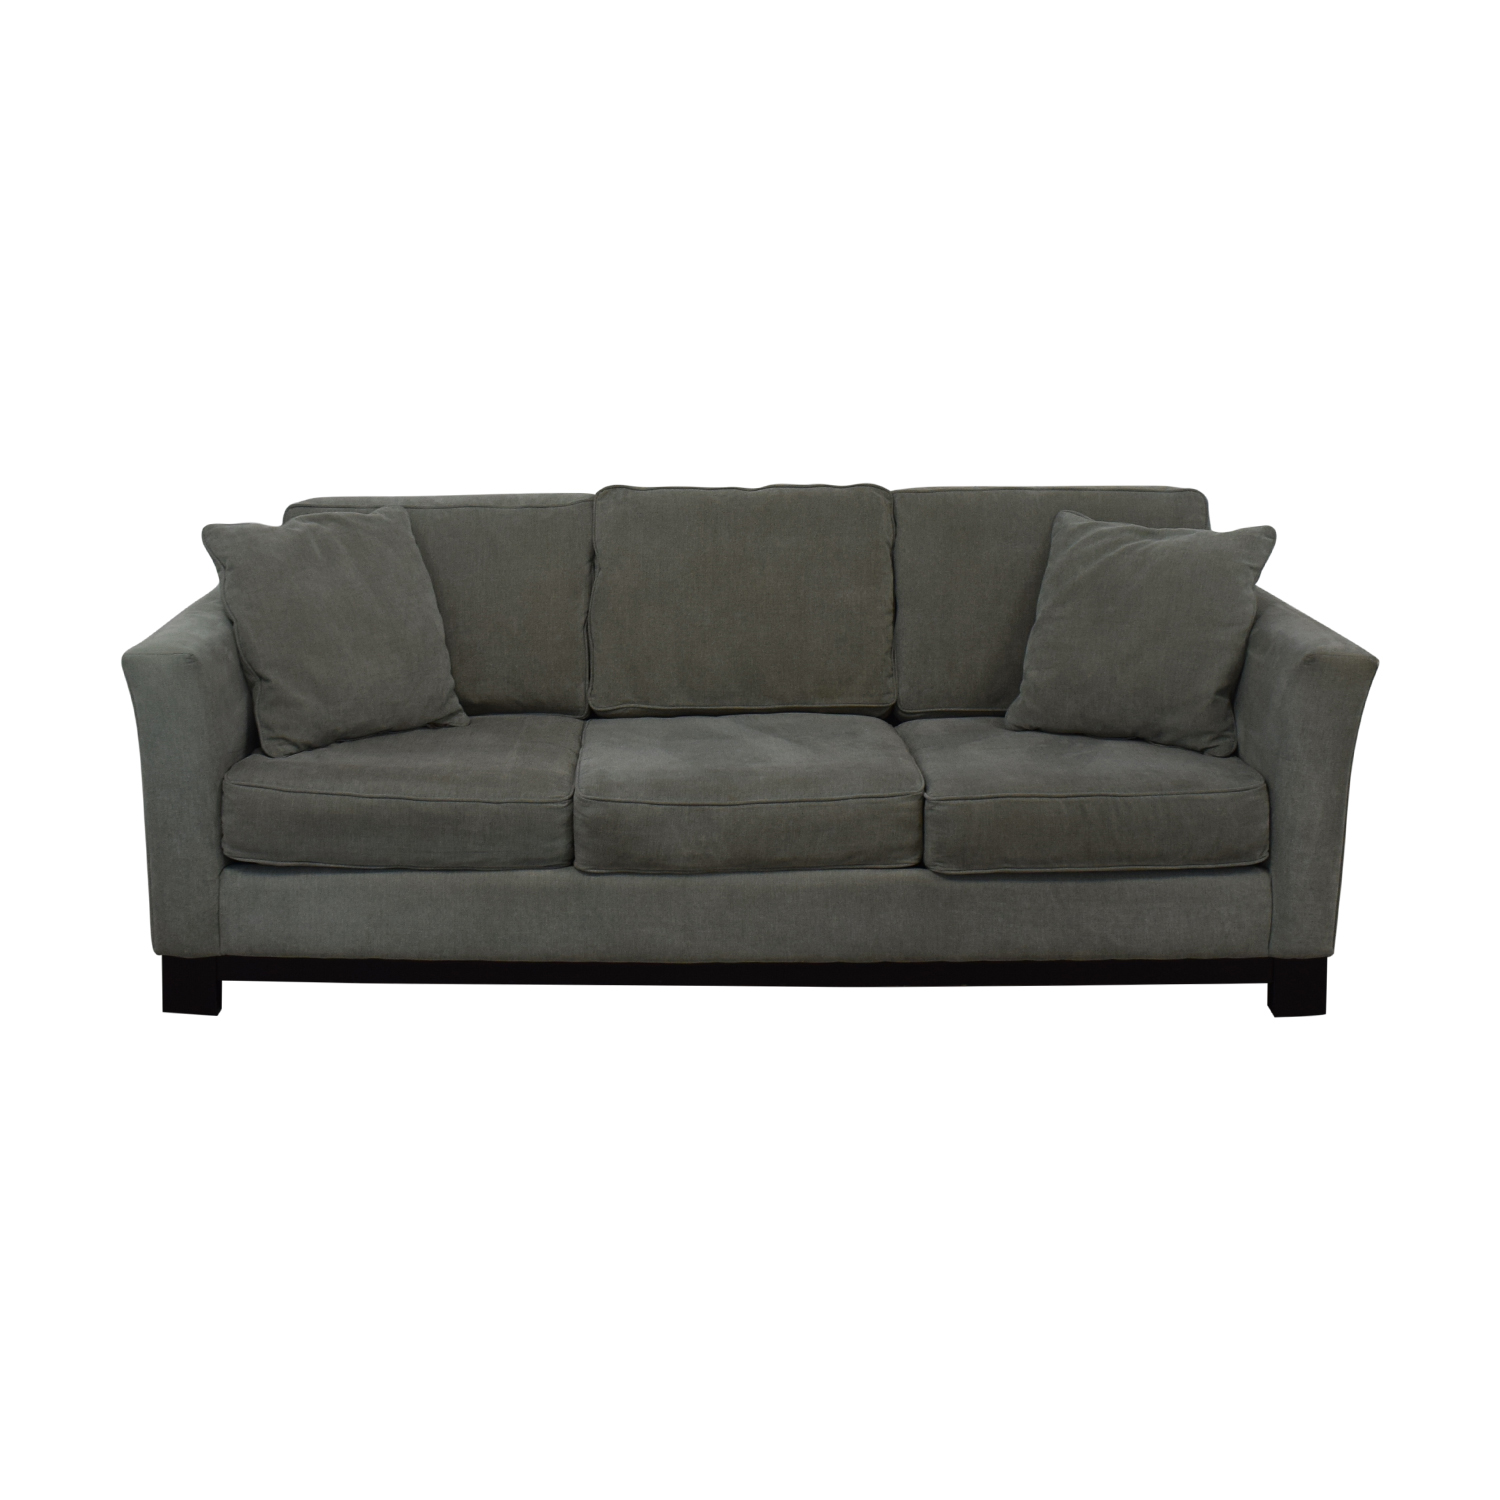 shop Macy's Modern Three Cushion Sofa And Ottoman Macy's Classic Sofas